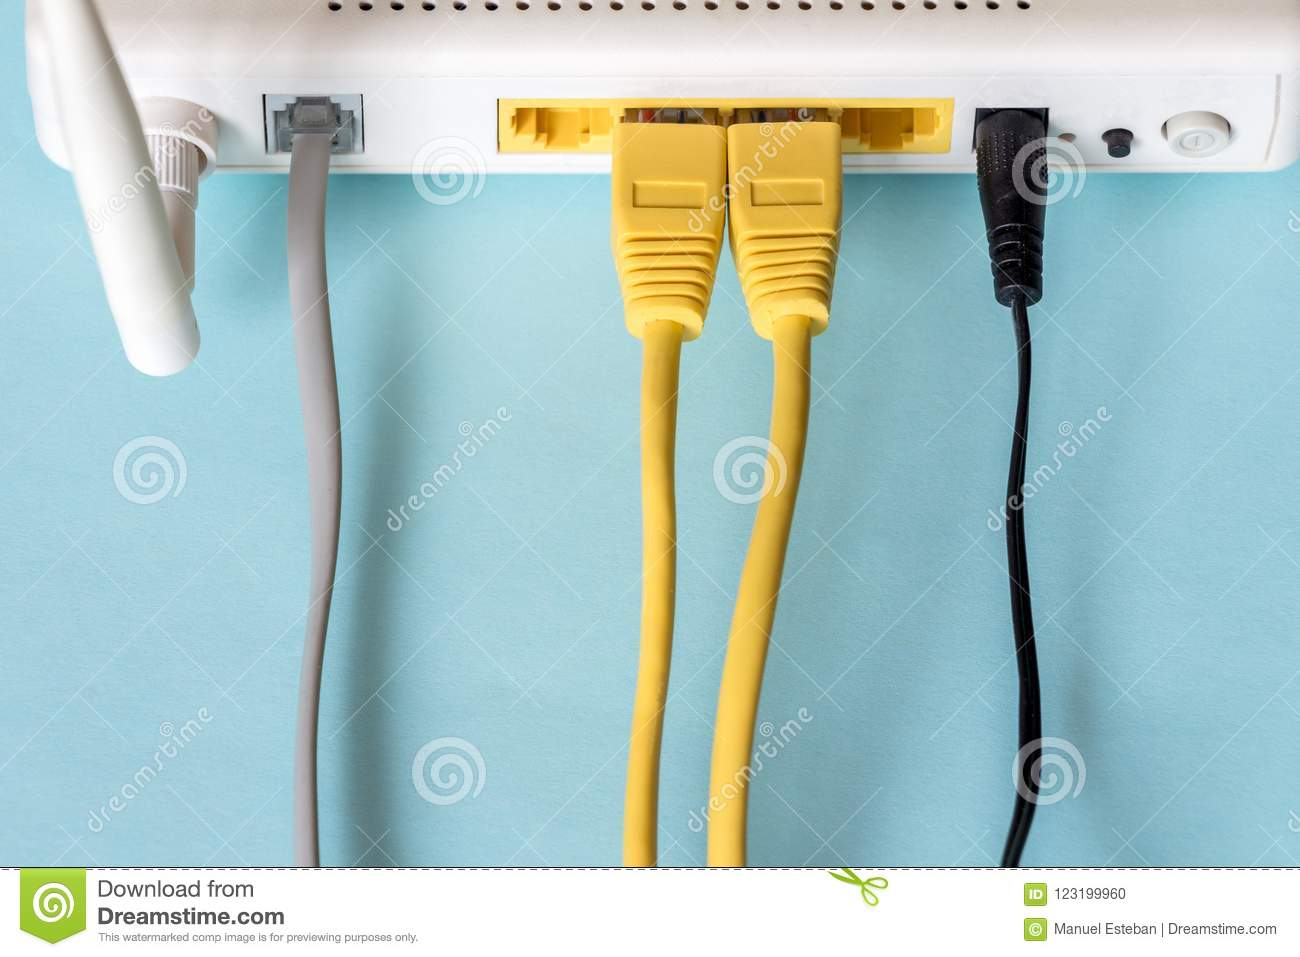 Connect An Ethernet Cable To A Wireless Router Stock Photo - Image ...